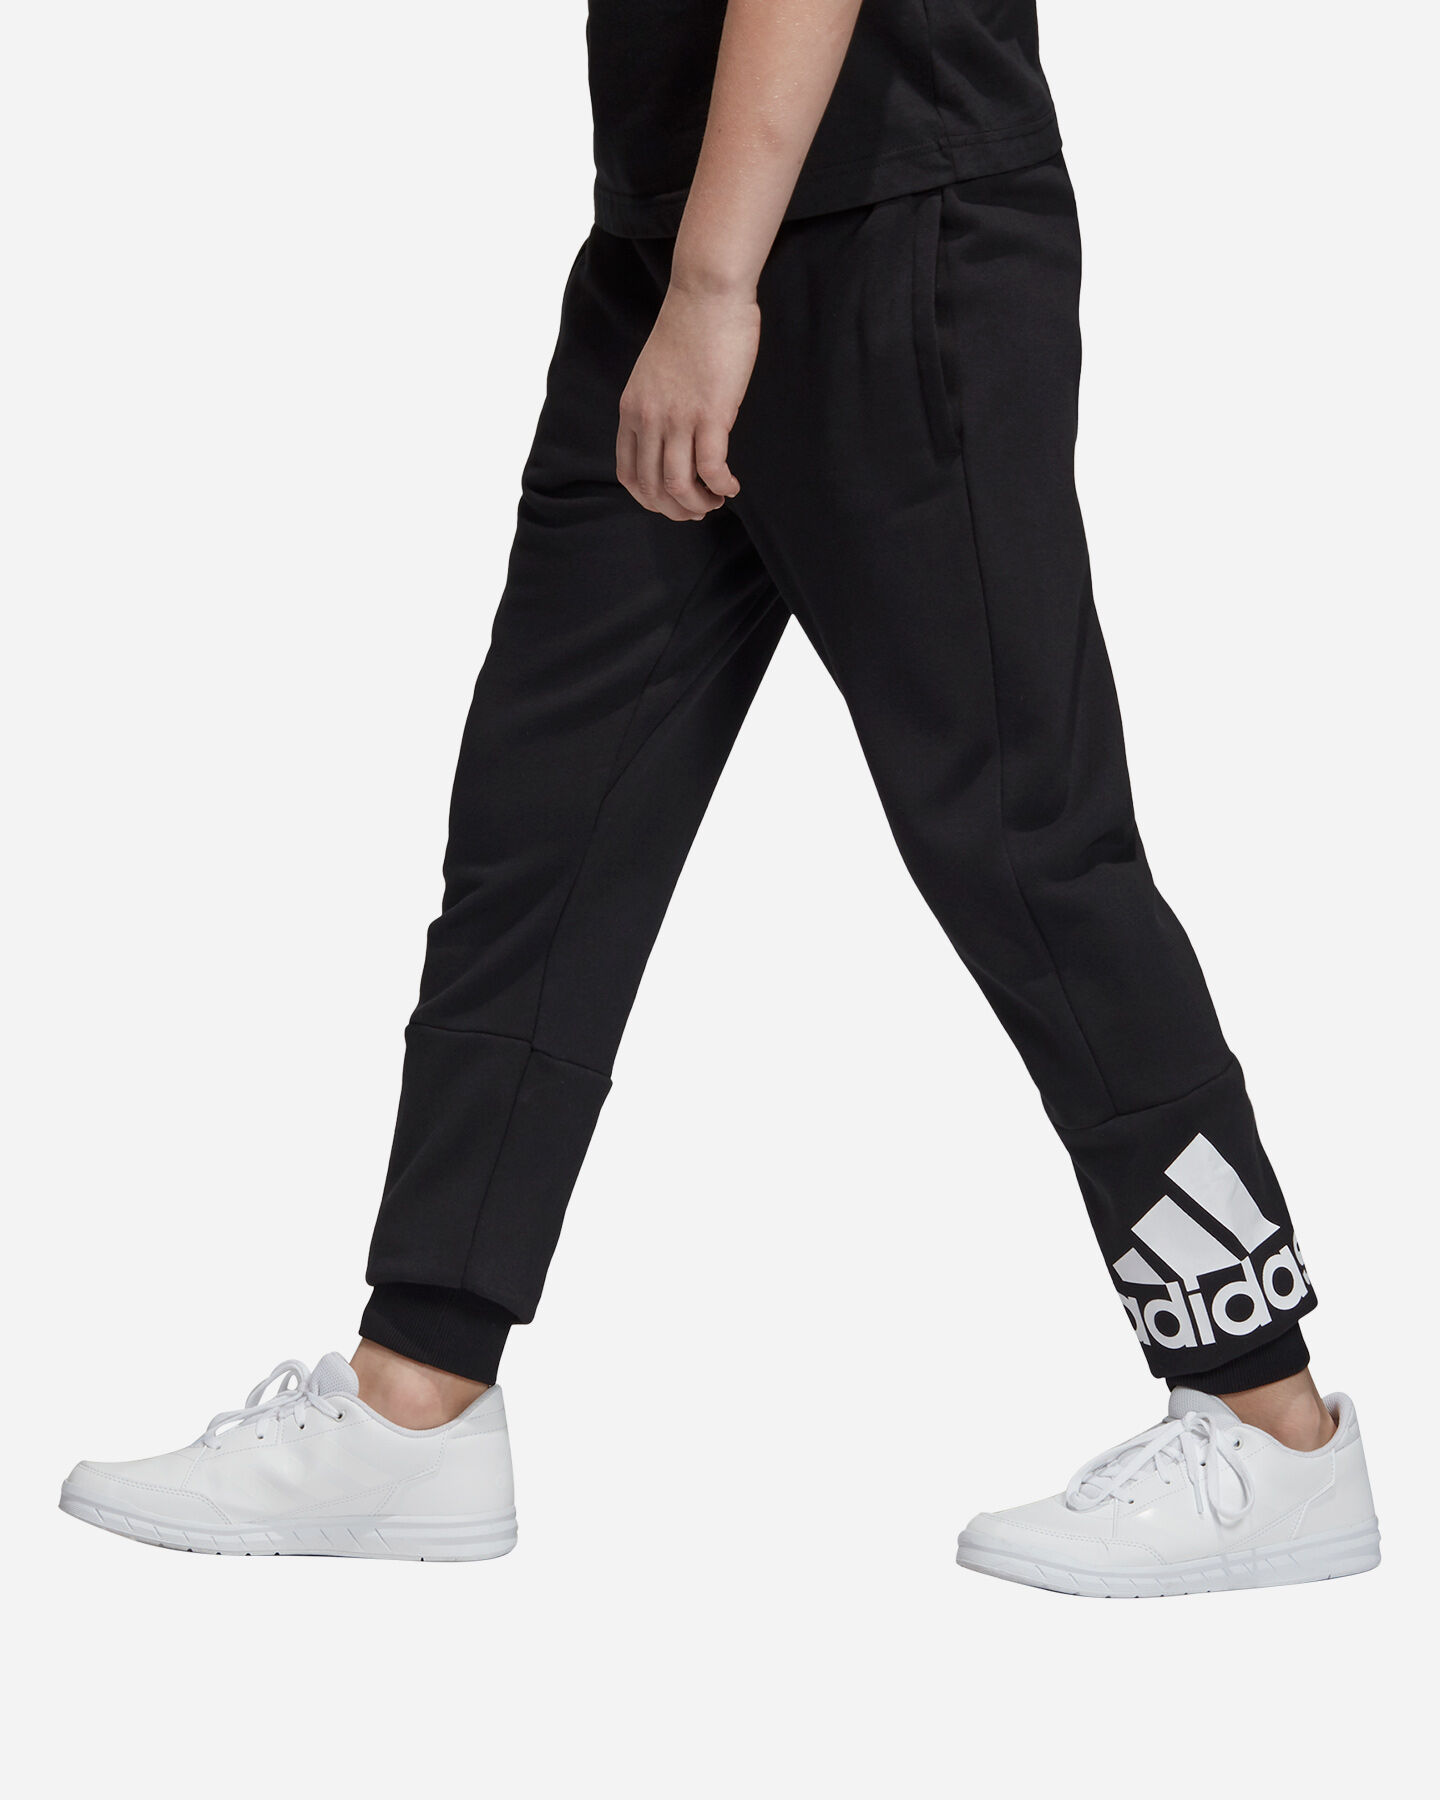 Pantalone ADIDAS MUST HAVES JR S2014745 scatto 3